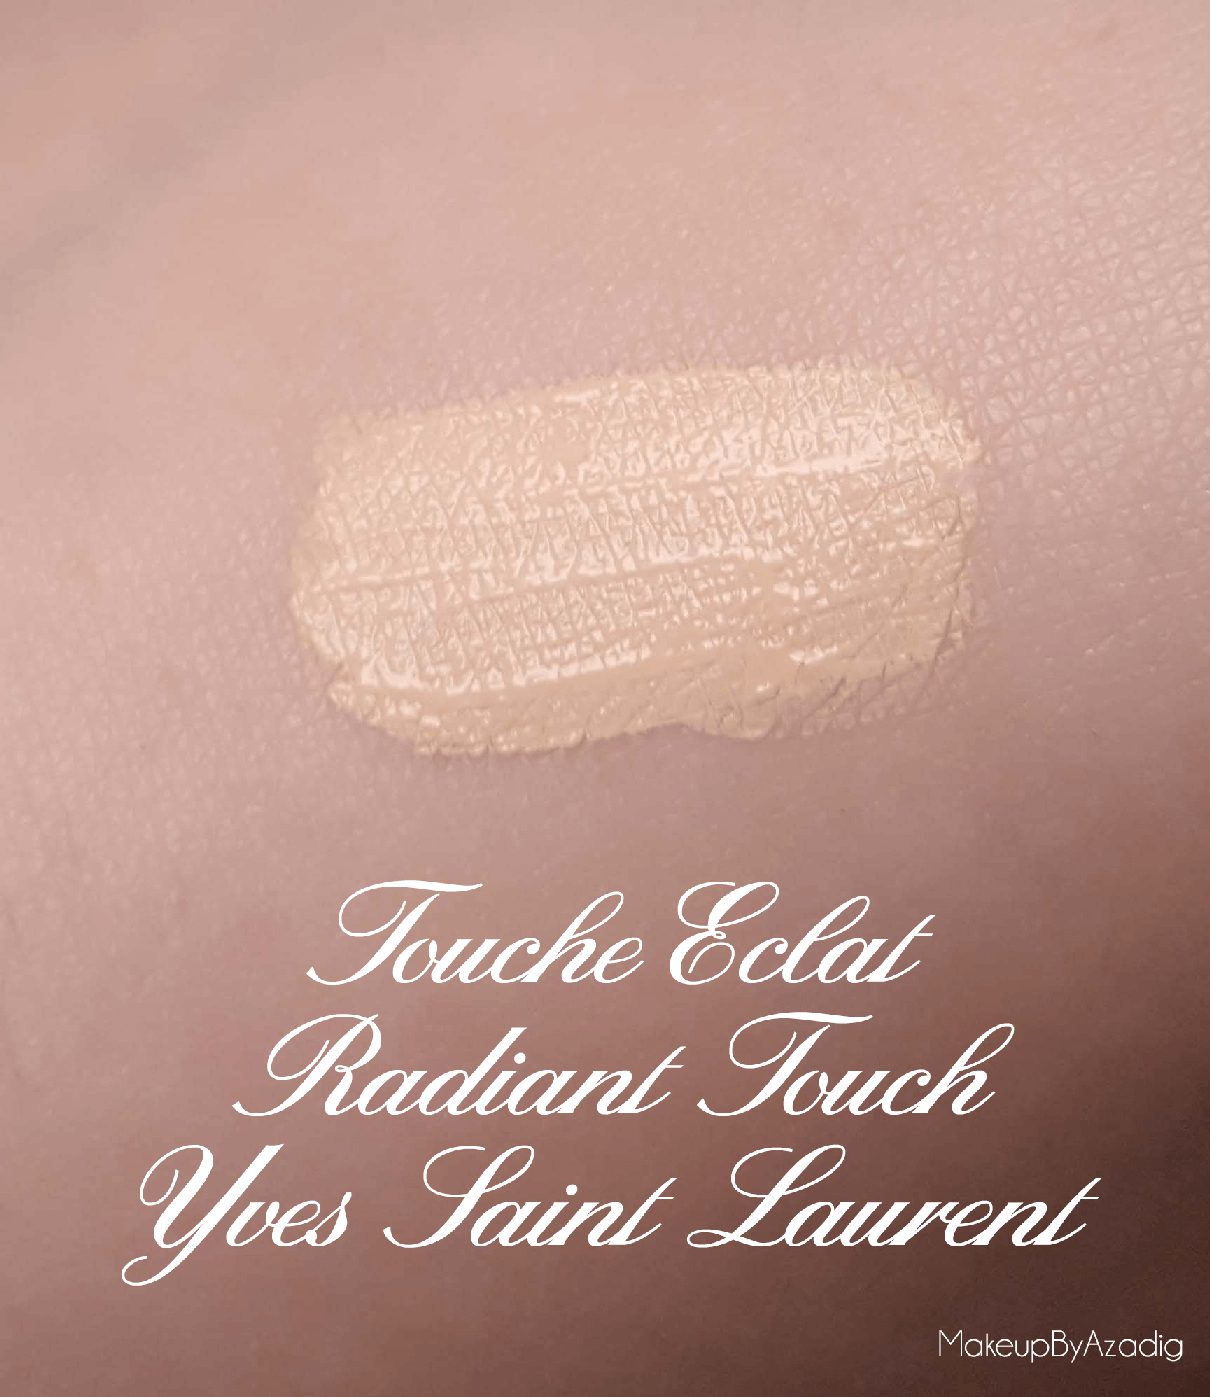 swatch-stylo-touche-eclat-radiant-touch-enlumineur-yves-saint-laurent-ysl-revue-review-avis-prix-lucette-makeupbyazadig-nouvelle-collection